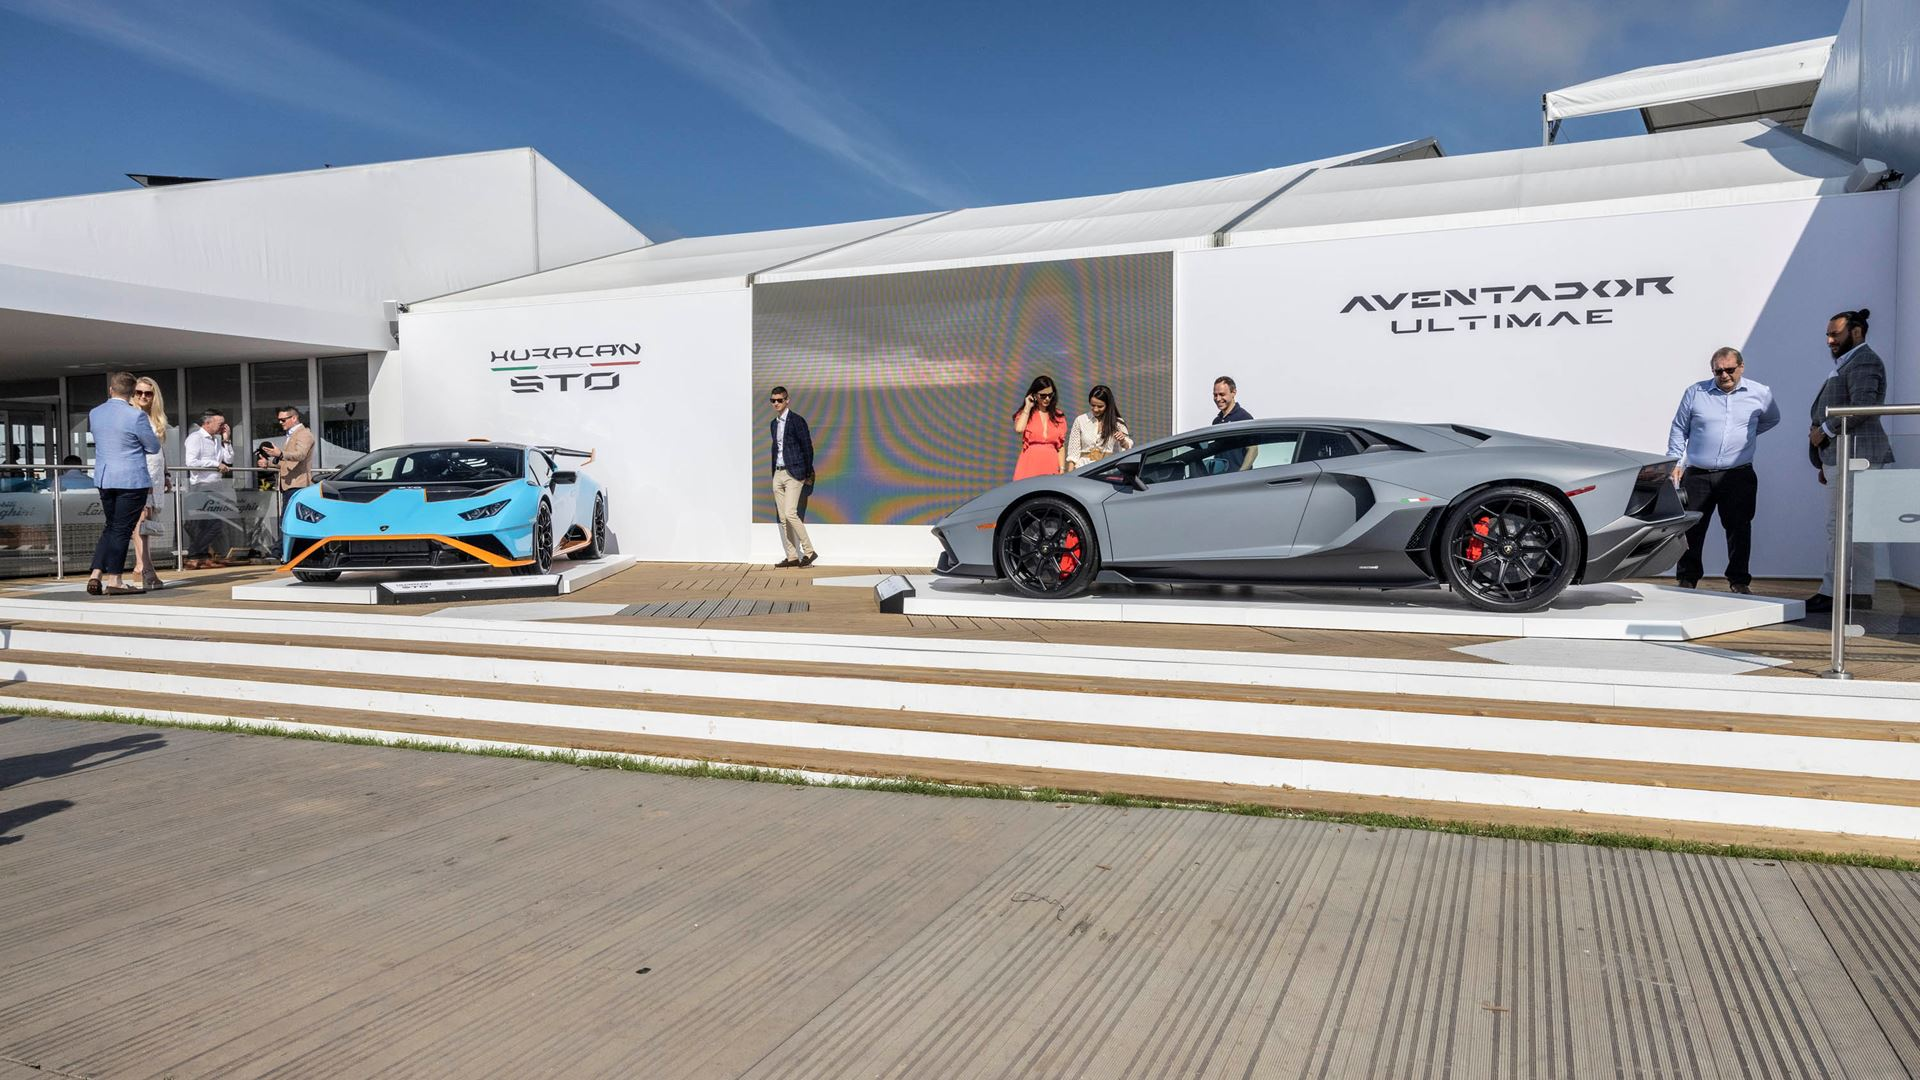 Automobili Lamborghini celebrates V12 and its Squadra Corse motorsport prowess on road and track, at Goodwood Festival of Speed 2021 - Image 8